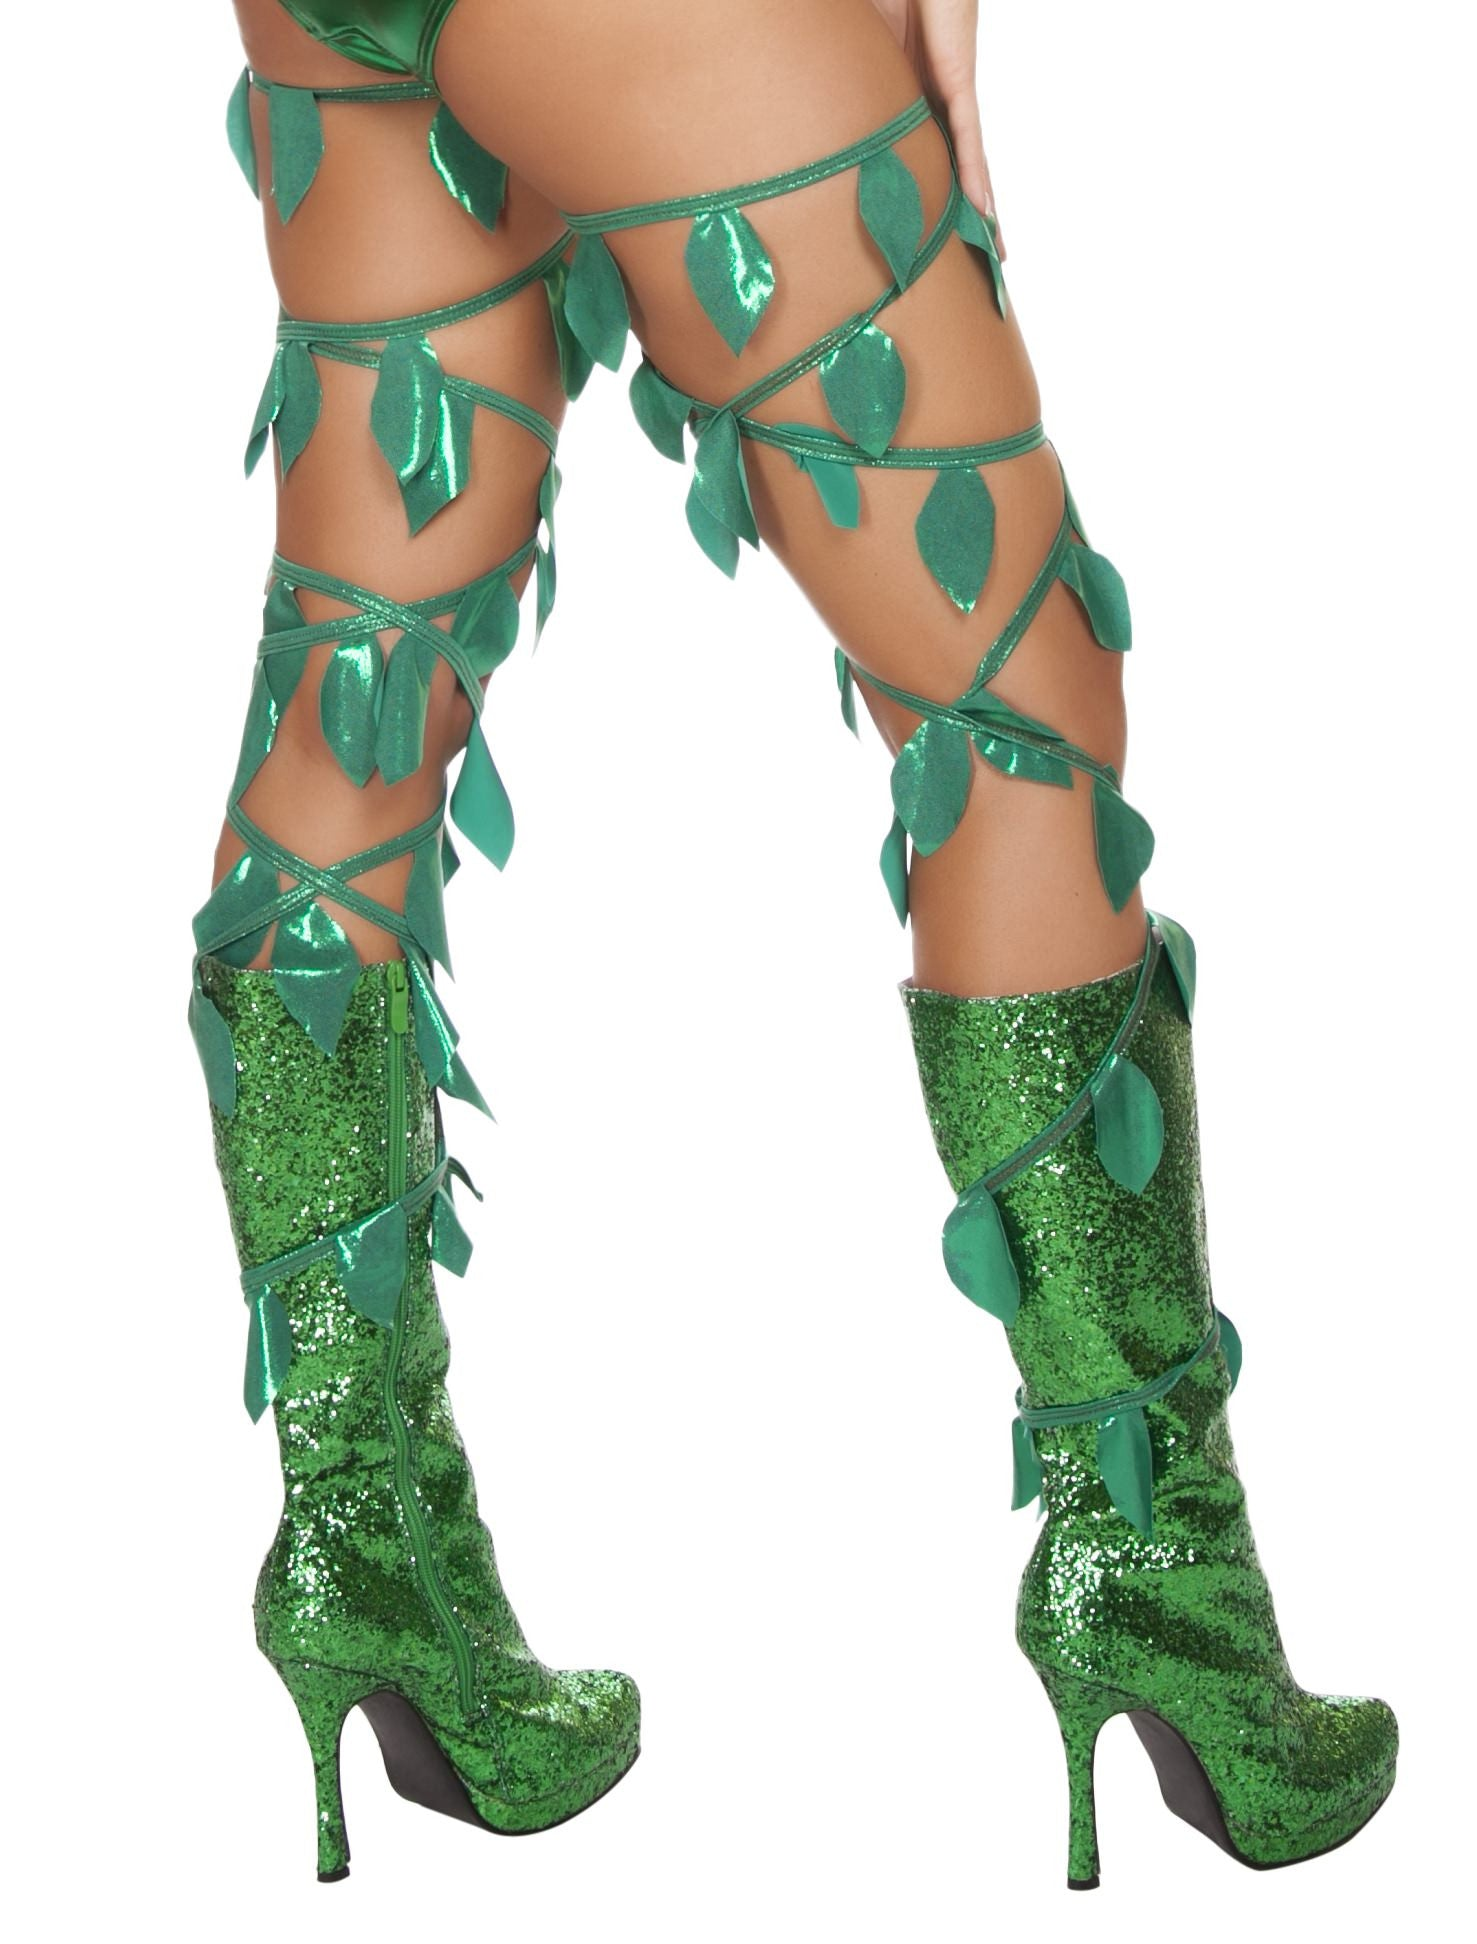 4642 - Green Leaf Thigh Wraps